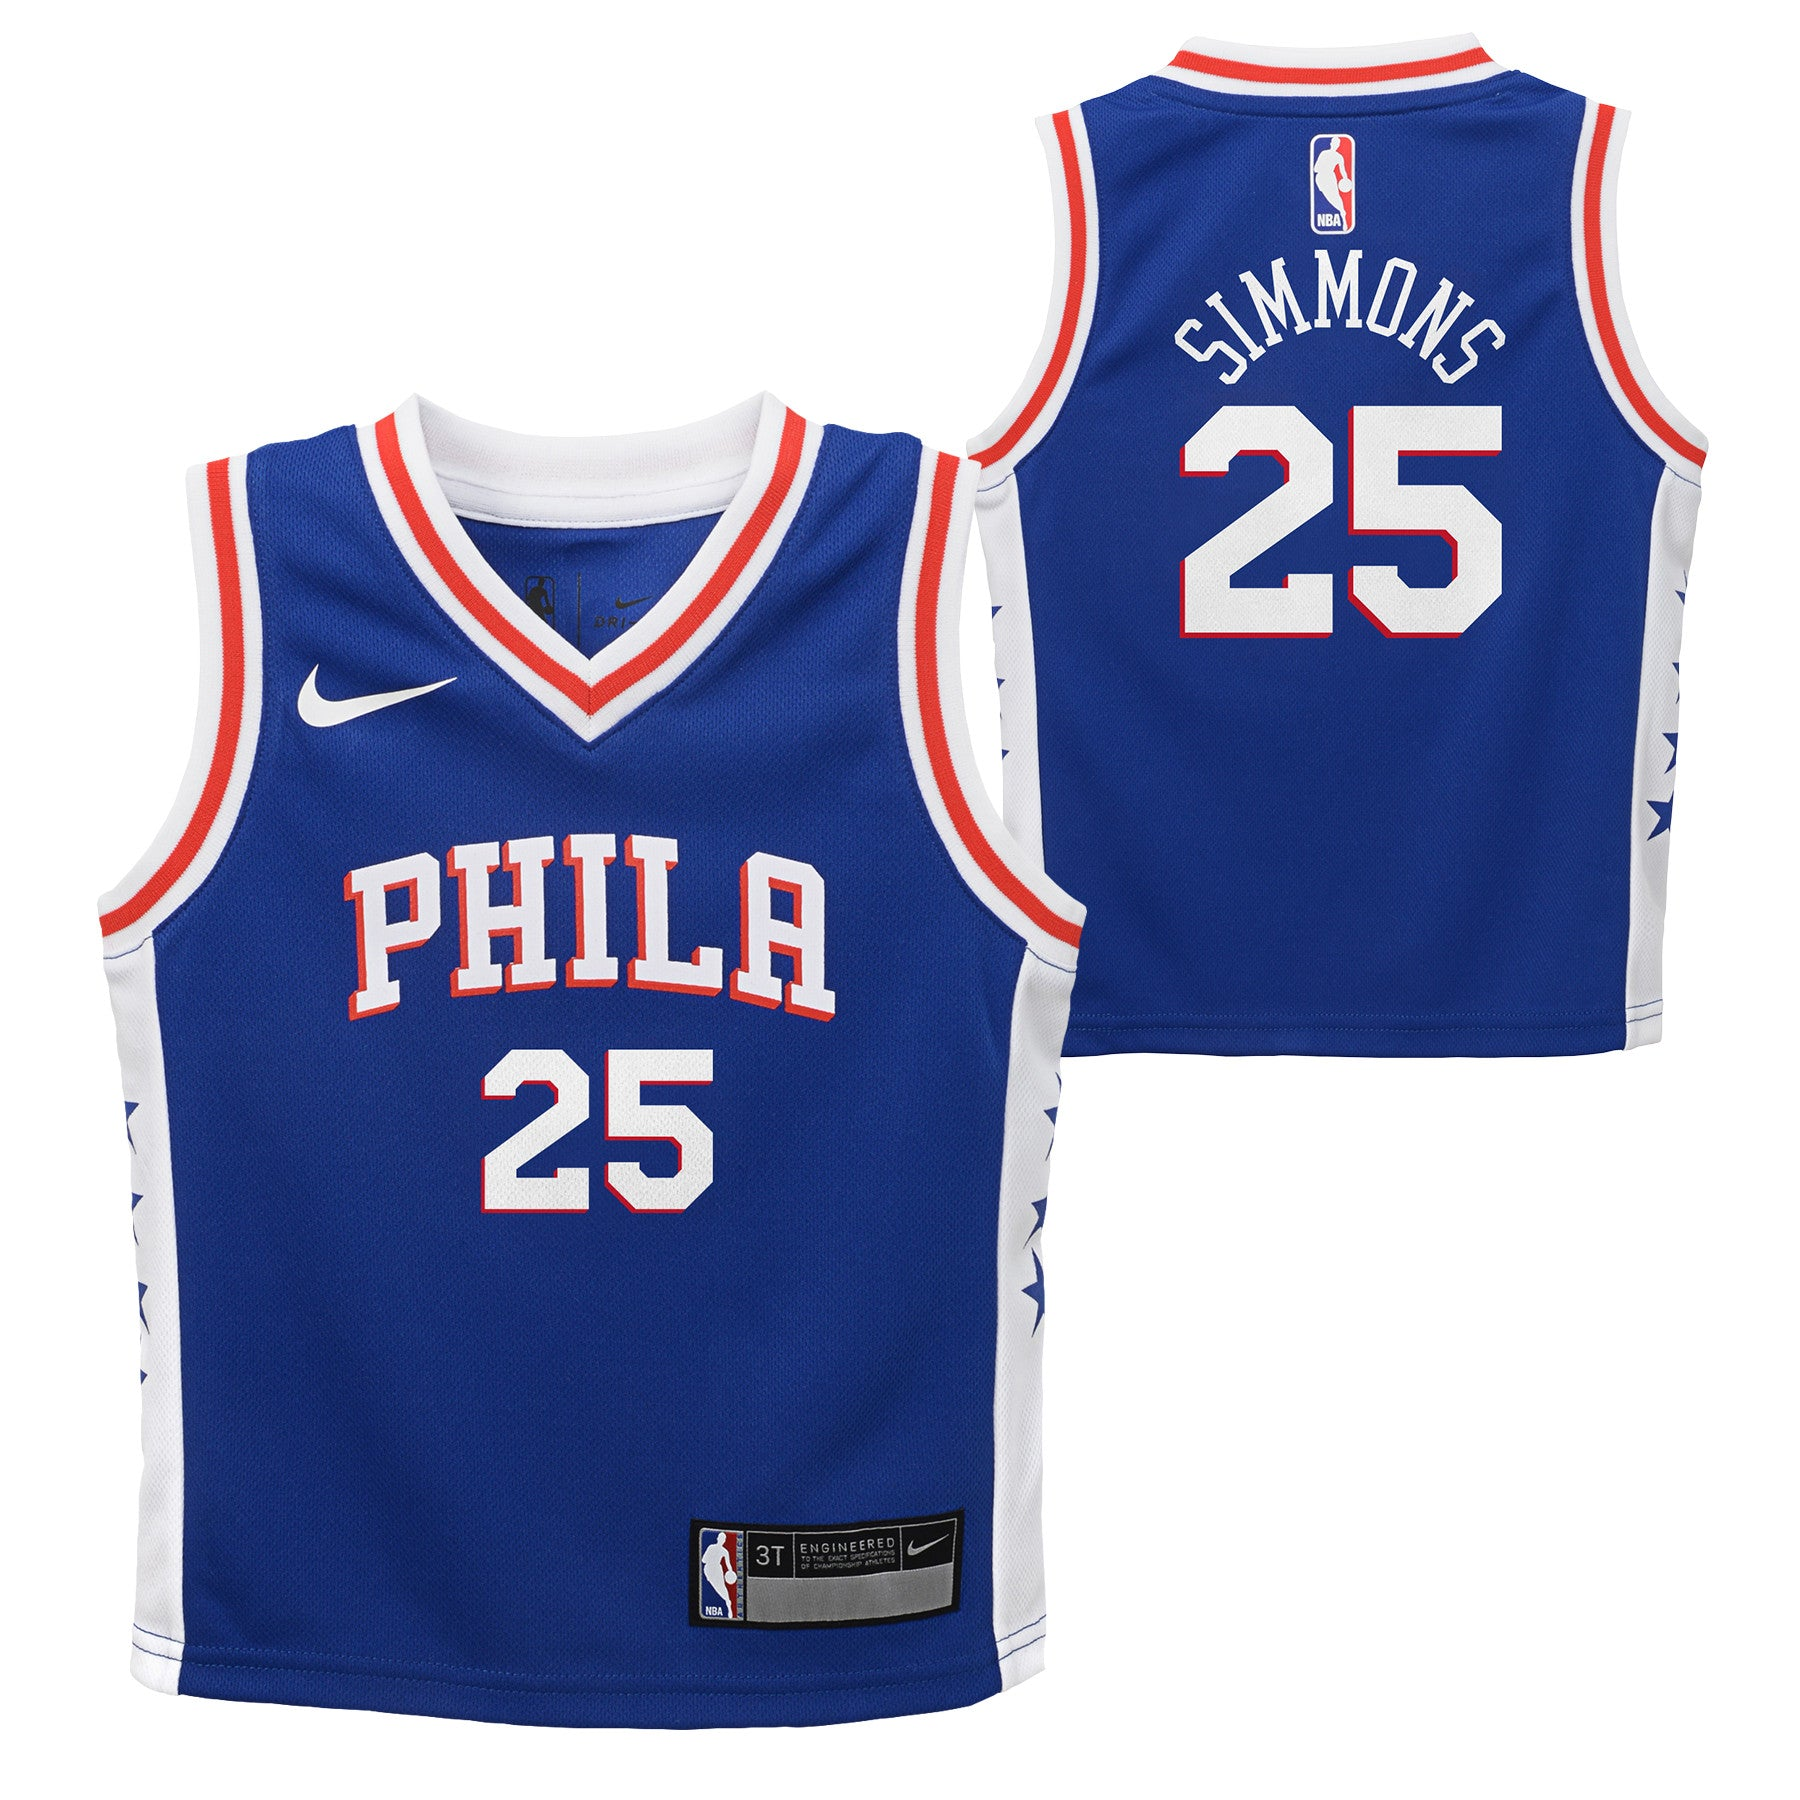 0d6d33af9 BEN SIMMONS PHILADELPHIA 76ERS NBA ICON TODDLER JERSEY - Basketball Jersey  World